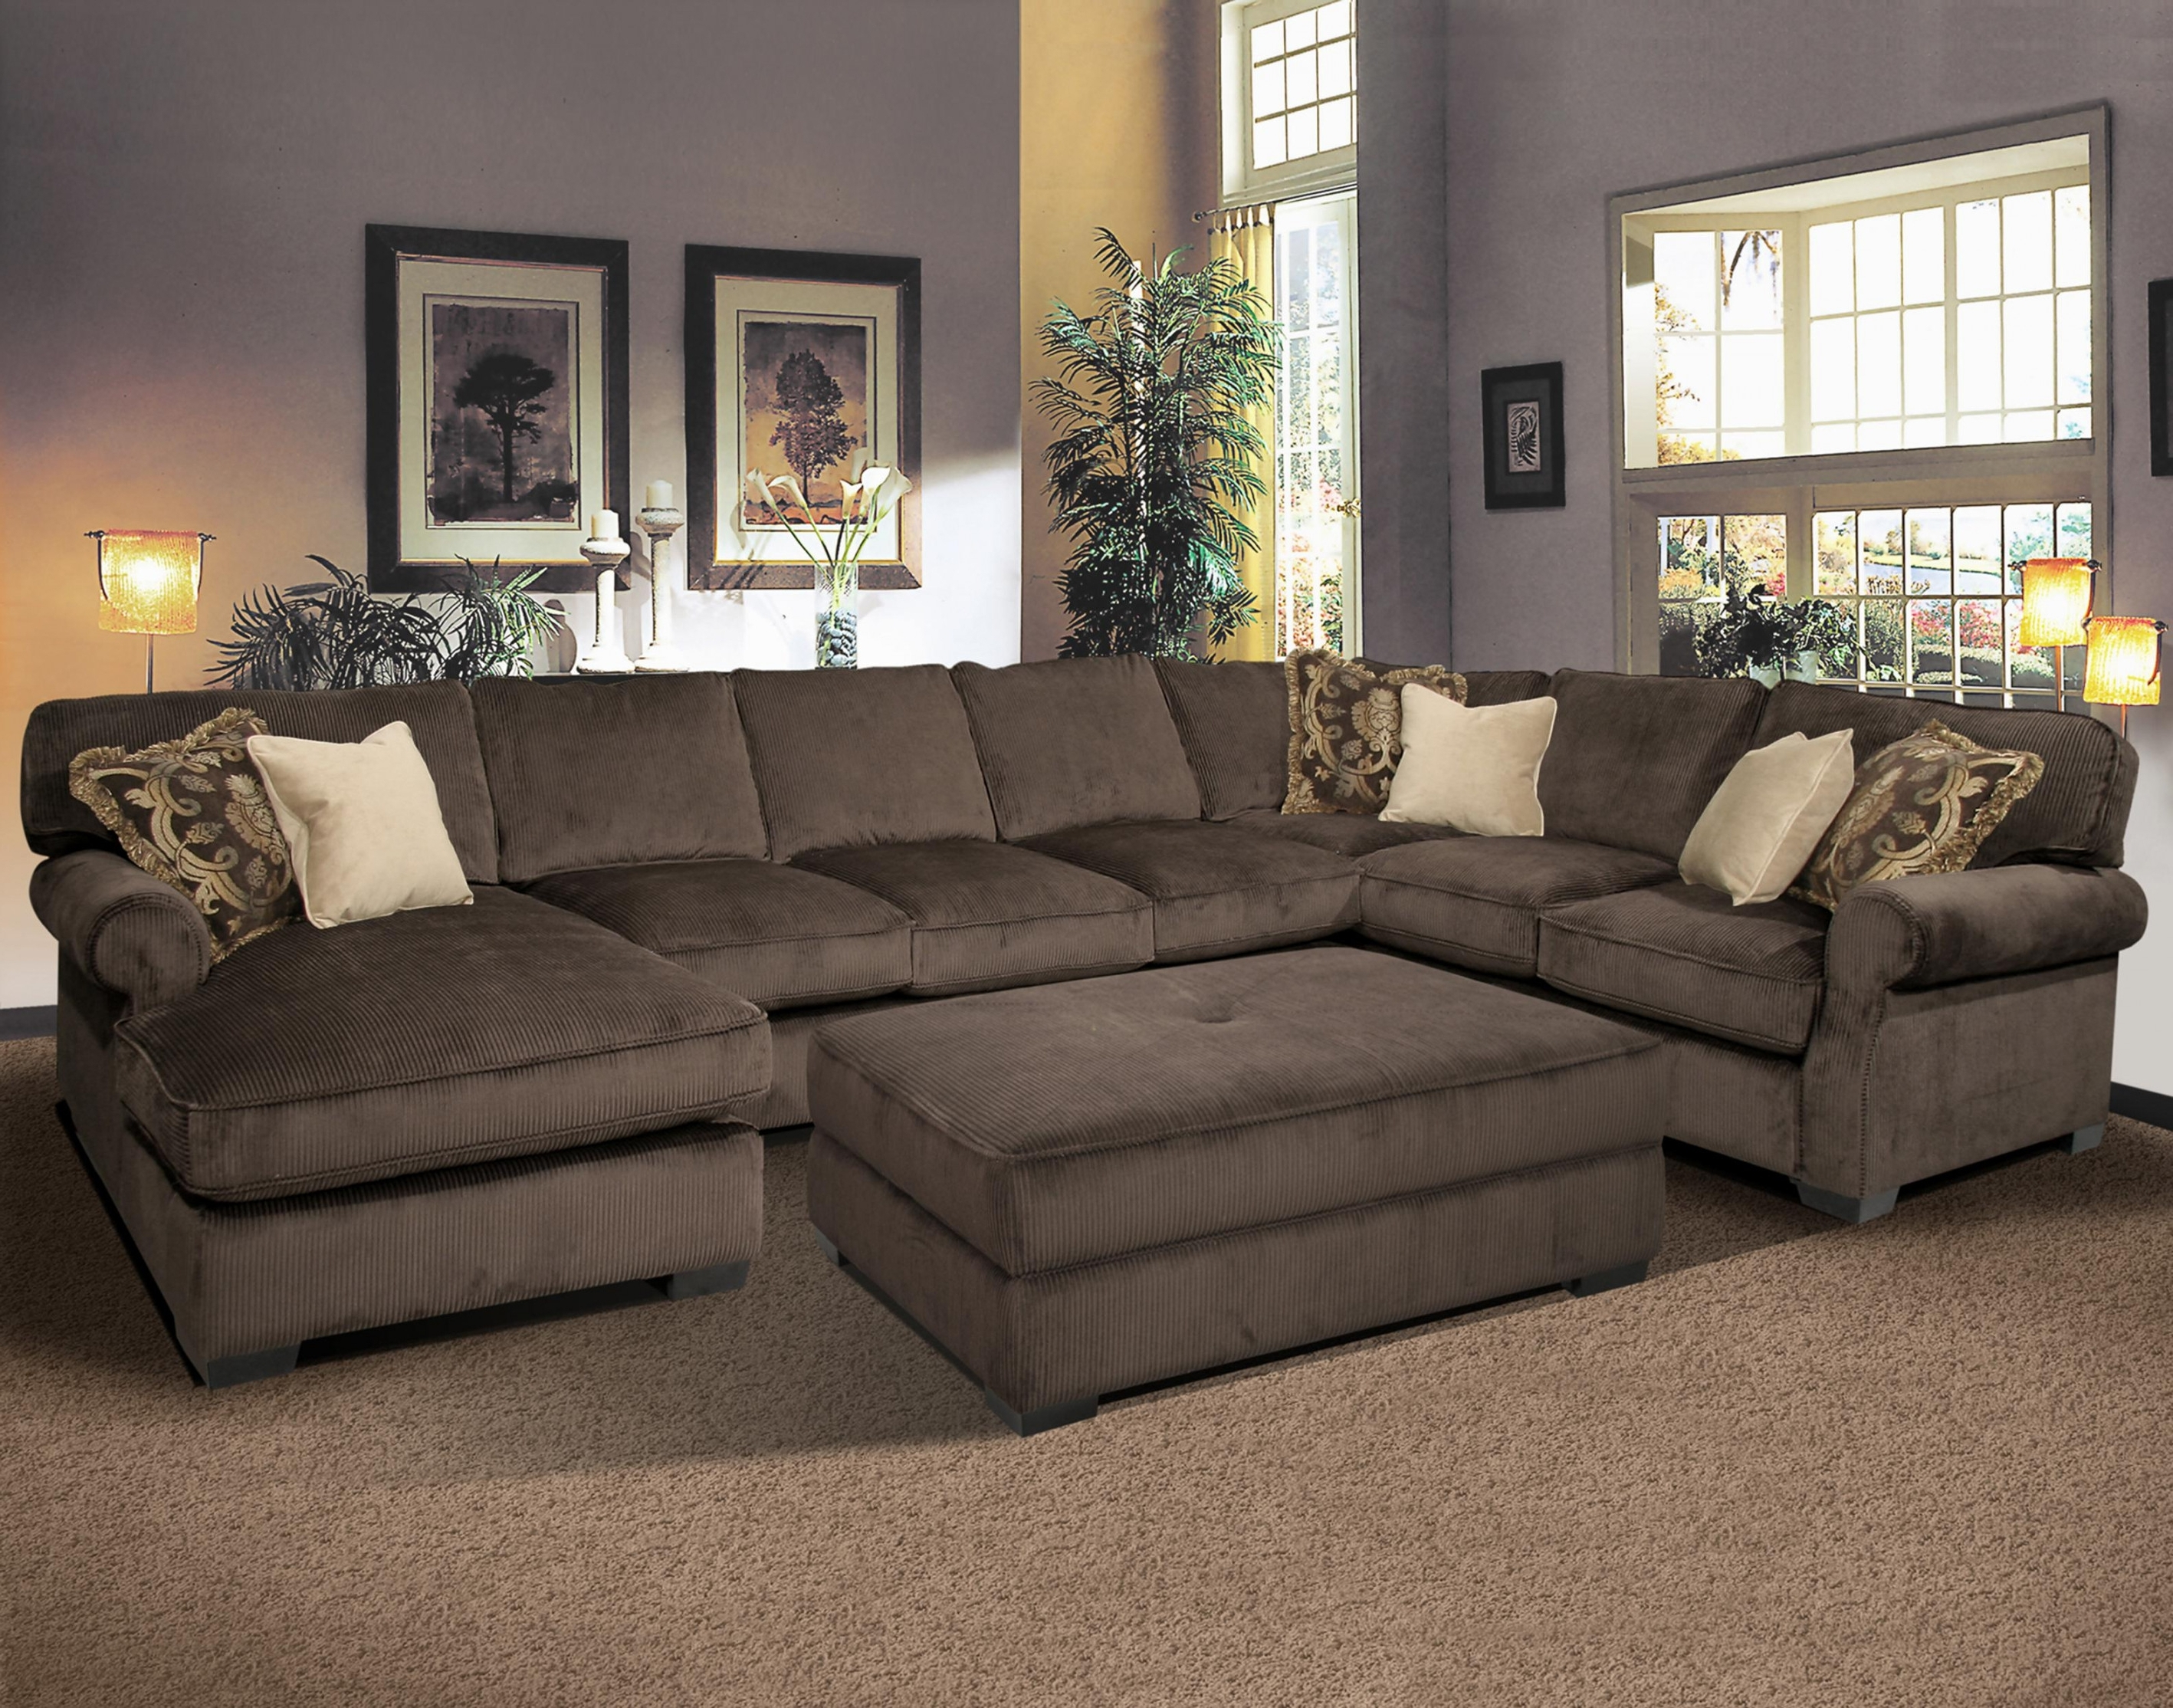 Oversized Sectional Sofas For 2017 Awesome Oversized Sectional Sofa On Grand Island Large 7 Seat (View 12 of 15)